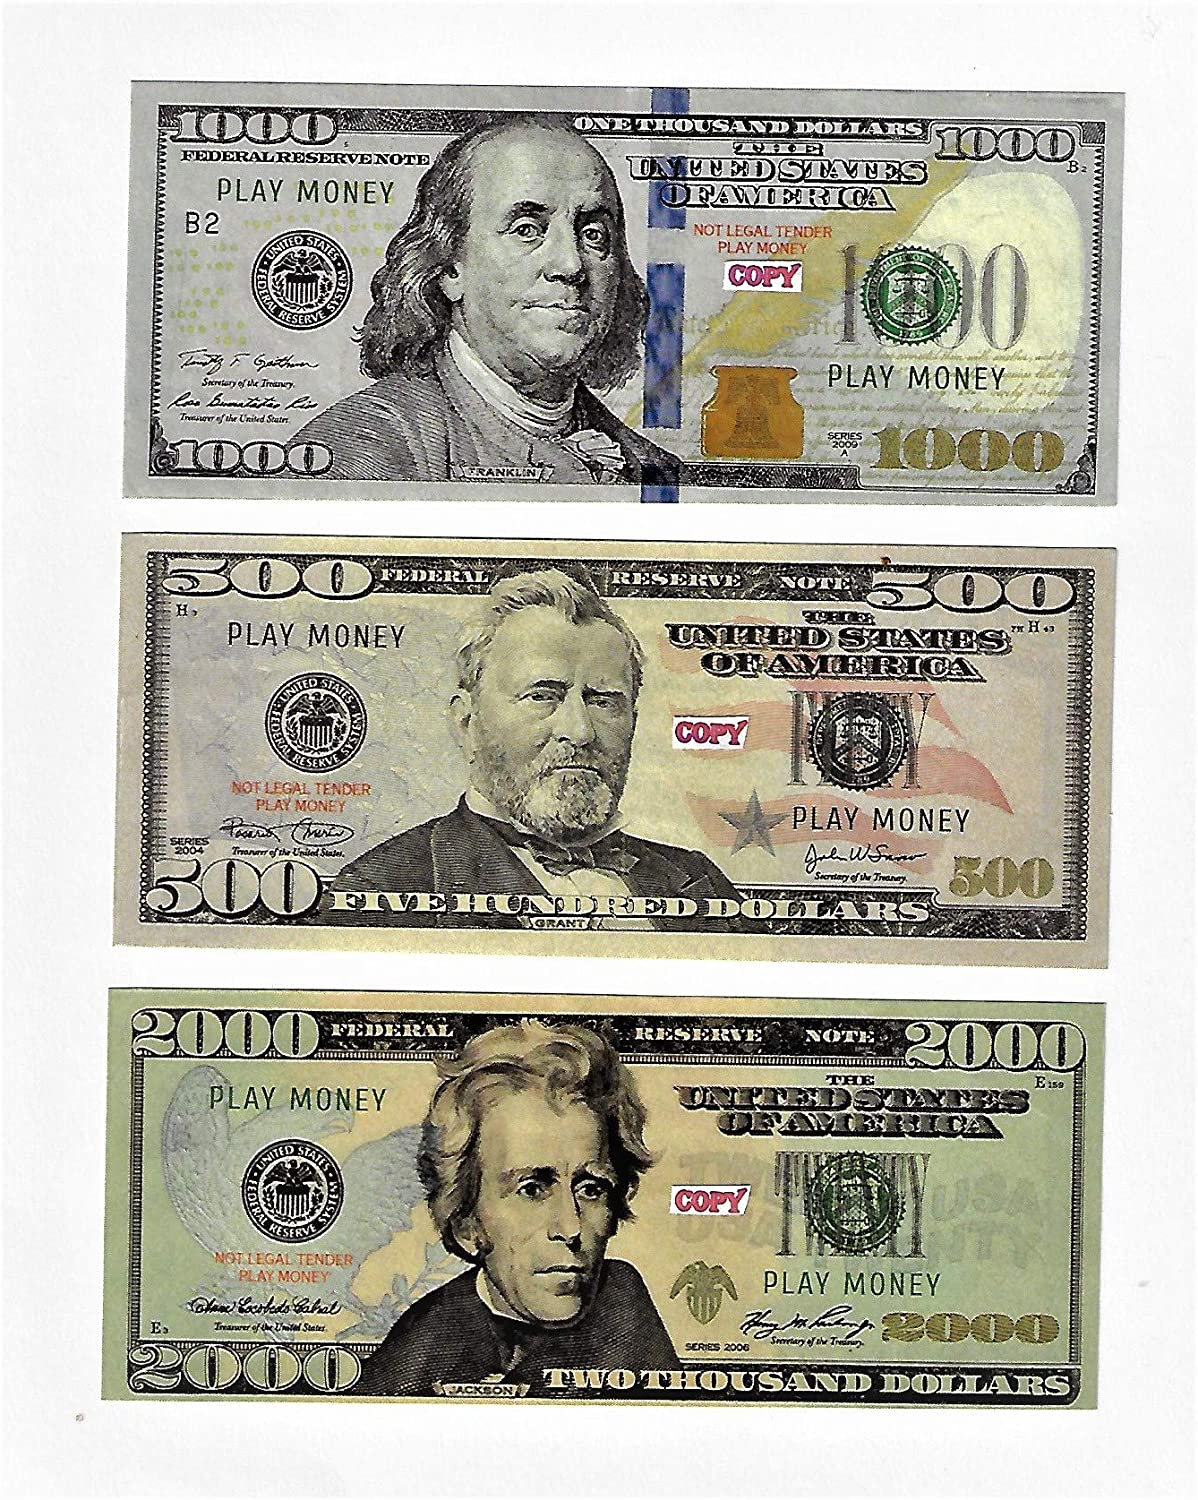 Play Money $500 Fort Worth New arrival Mall 1000 2000 bills best Prank Mo Movie Prop Novelty